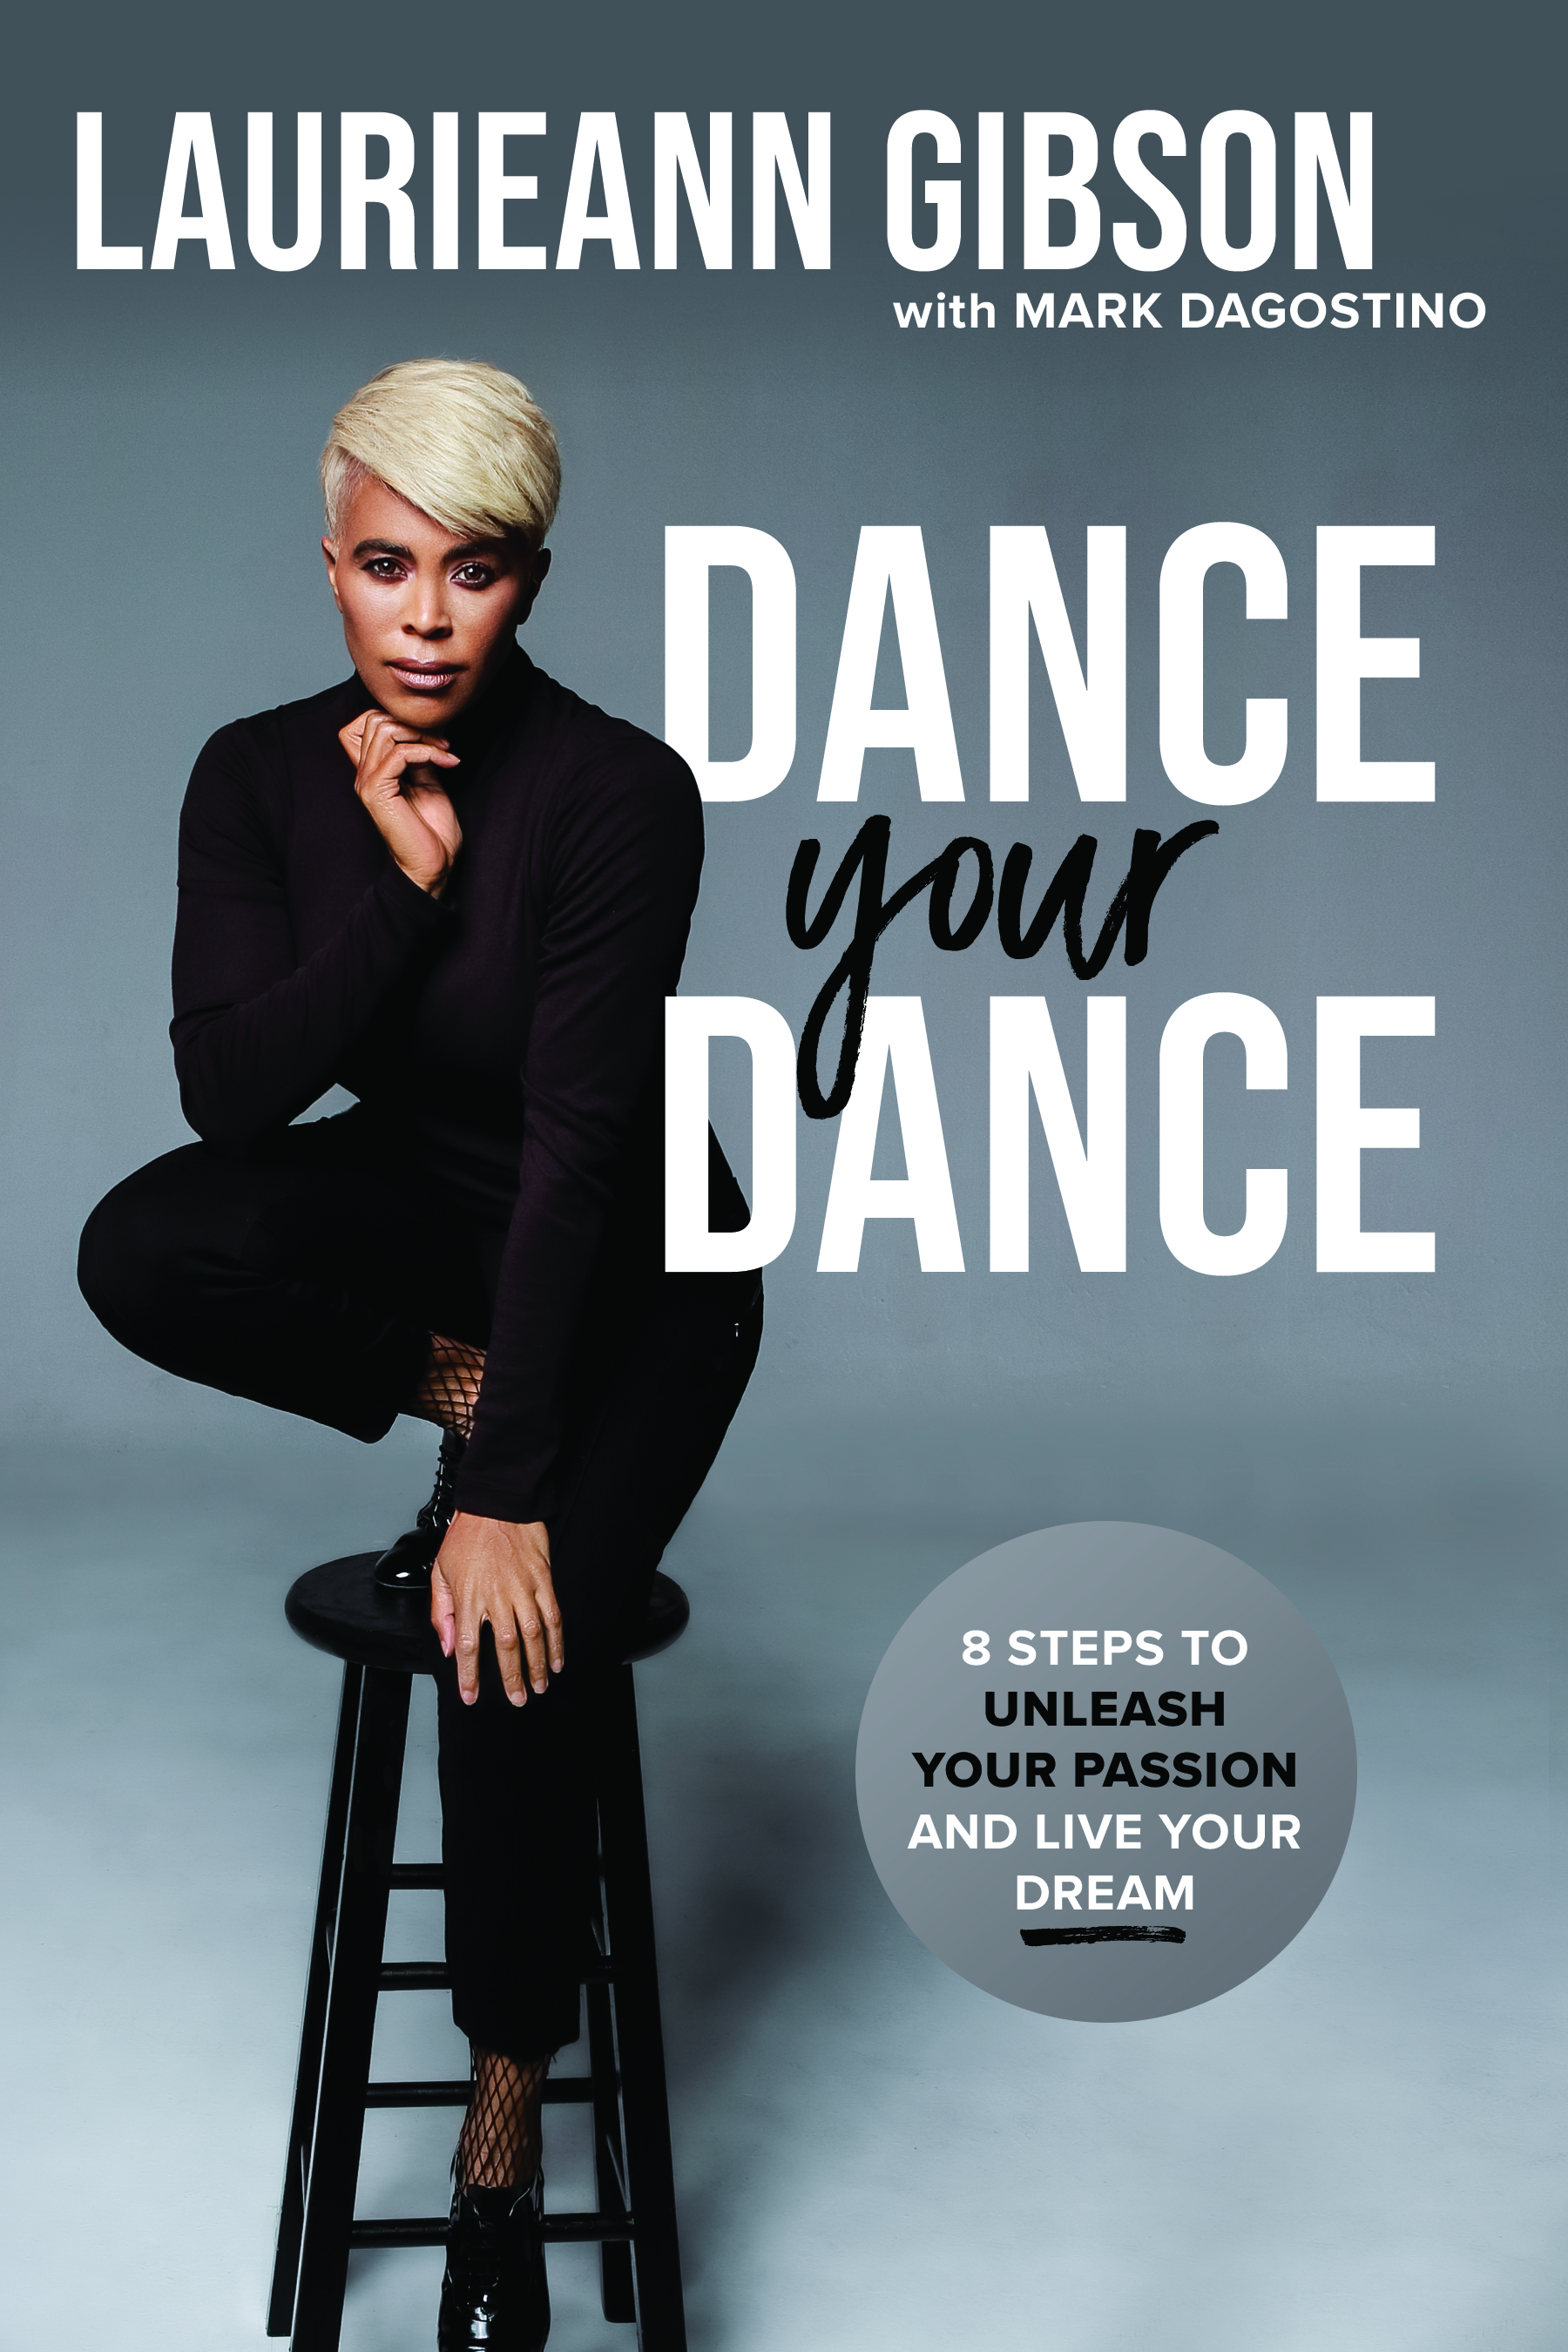 Laurieann_Gibson_Dance_Your_Dance_Book_Cover_Hi-res.jpg